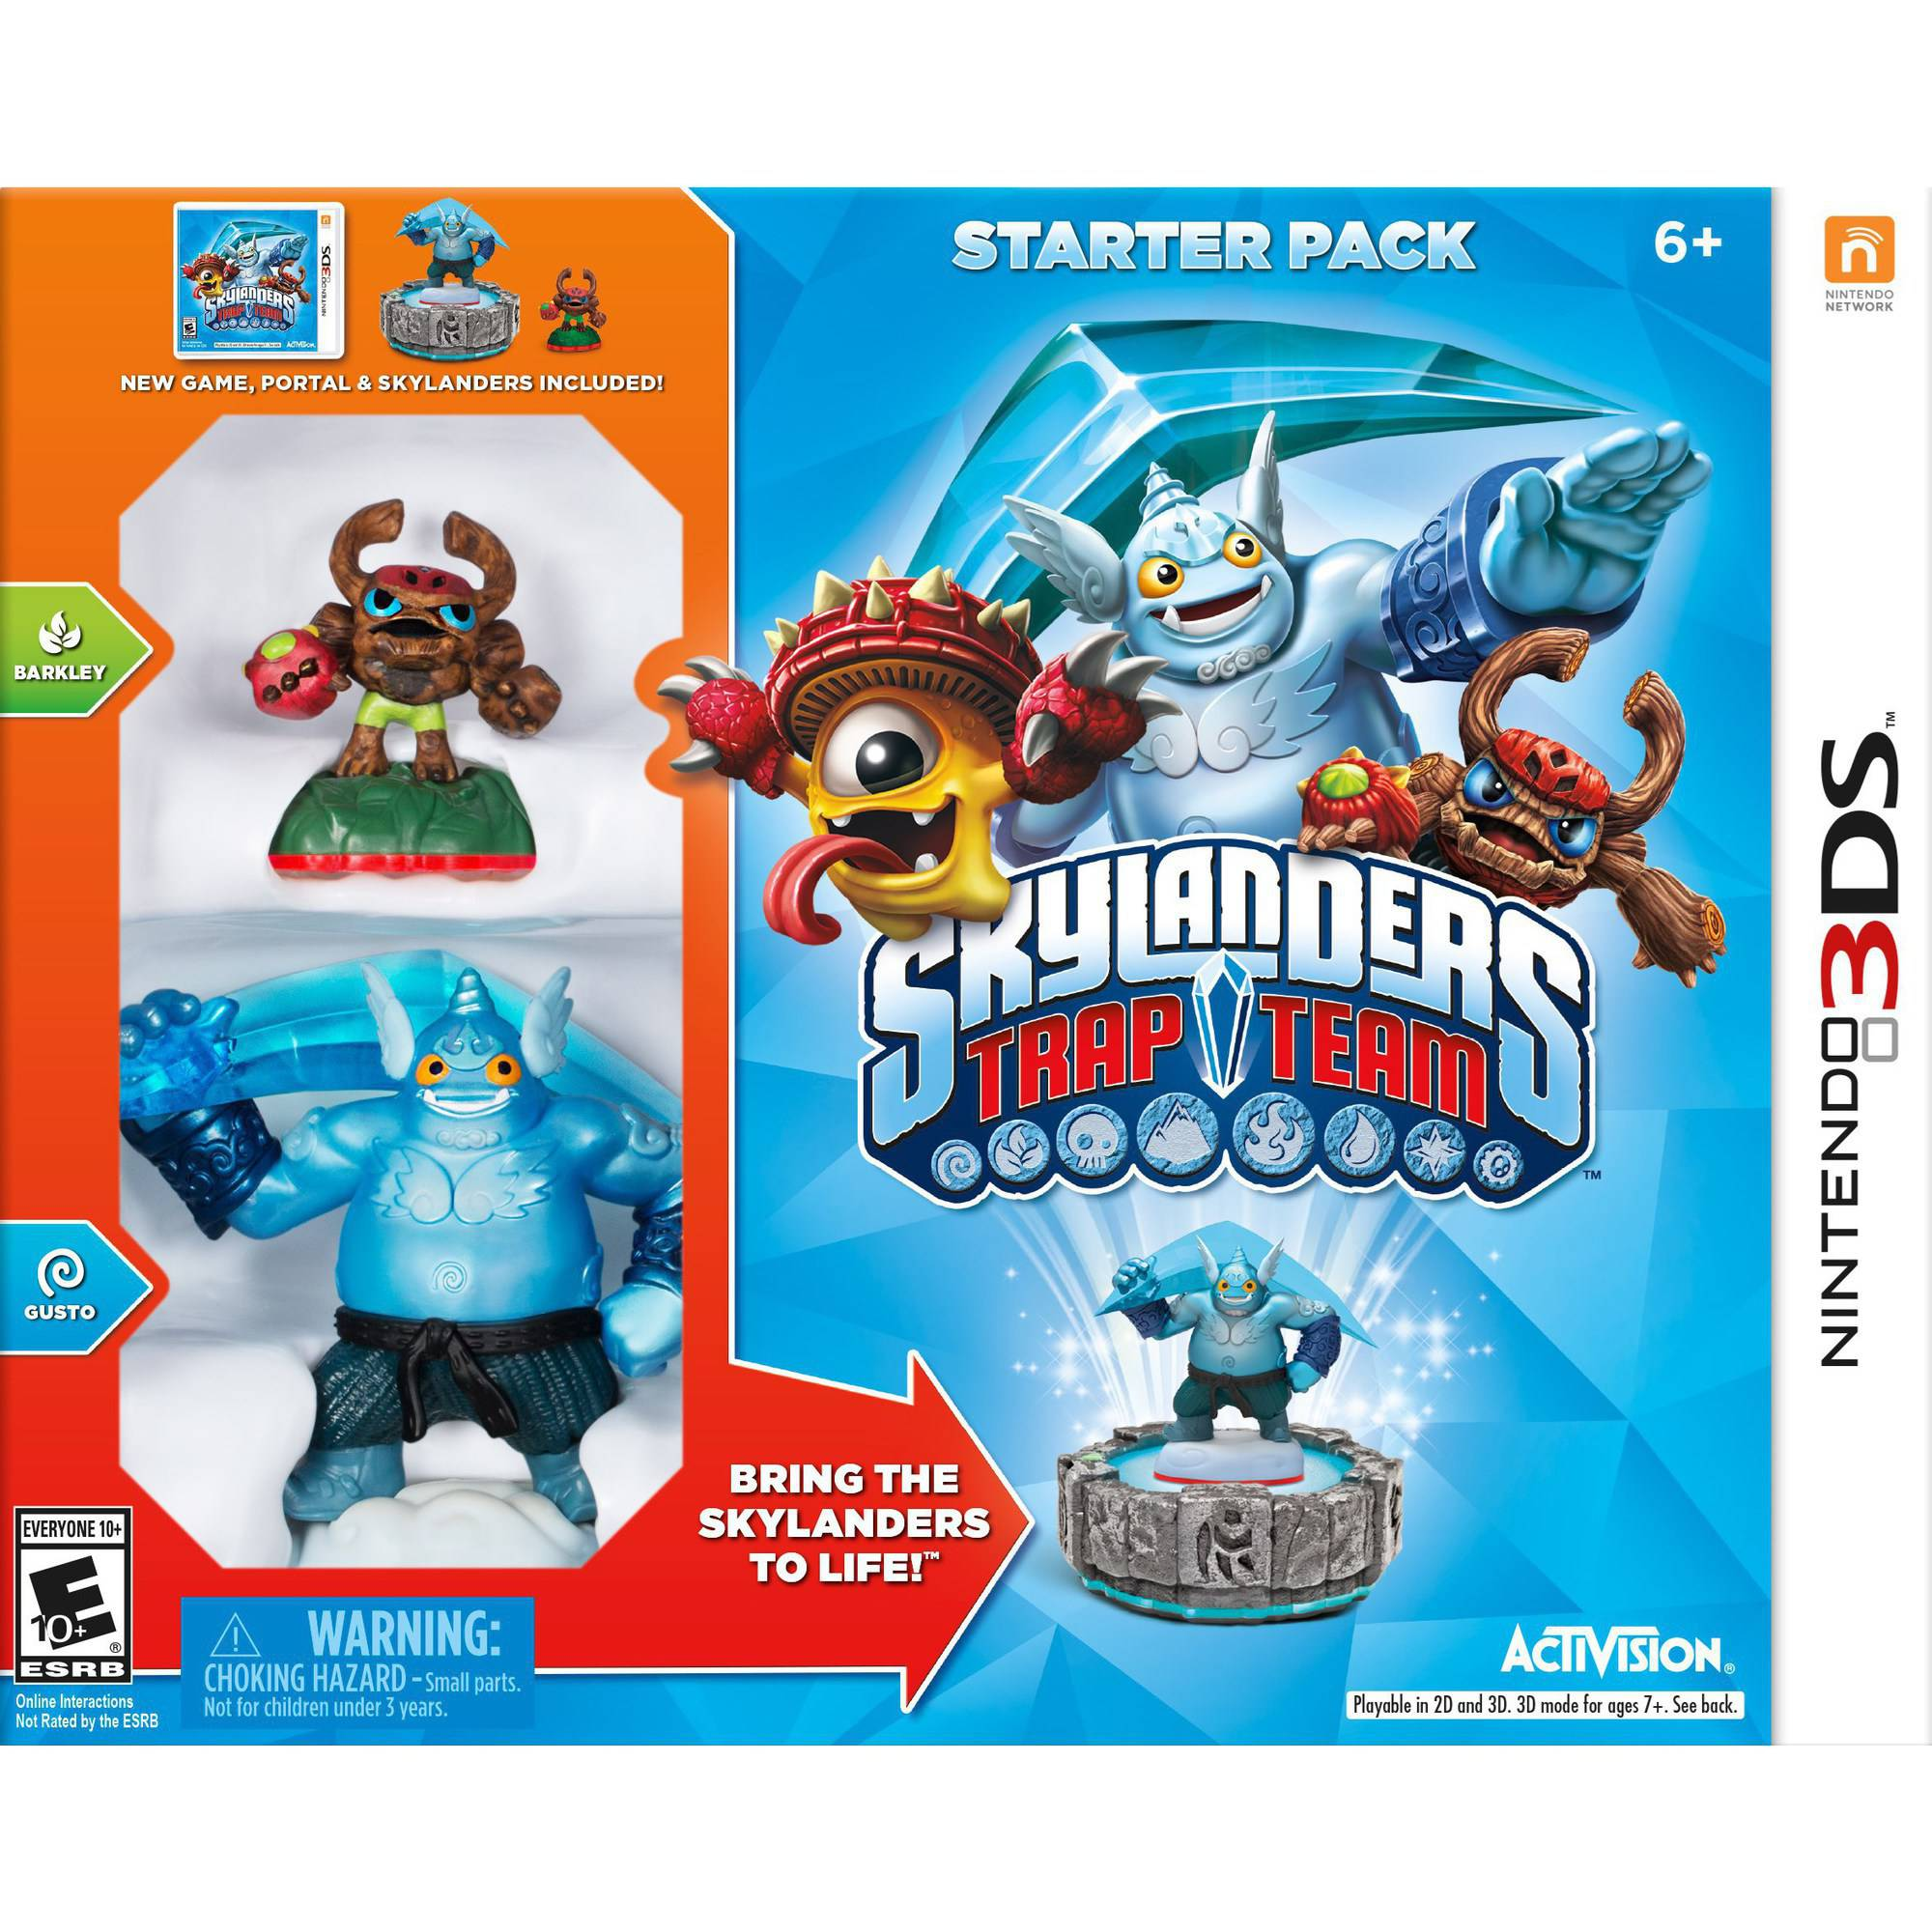 Skylanders Trap Team Nintendo 3DS Starter Pack Starter Pack Trap Team Starter Pack